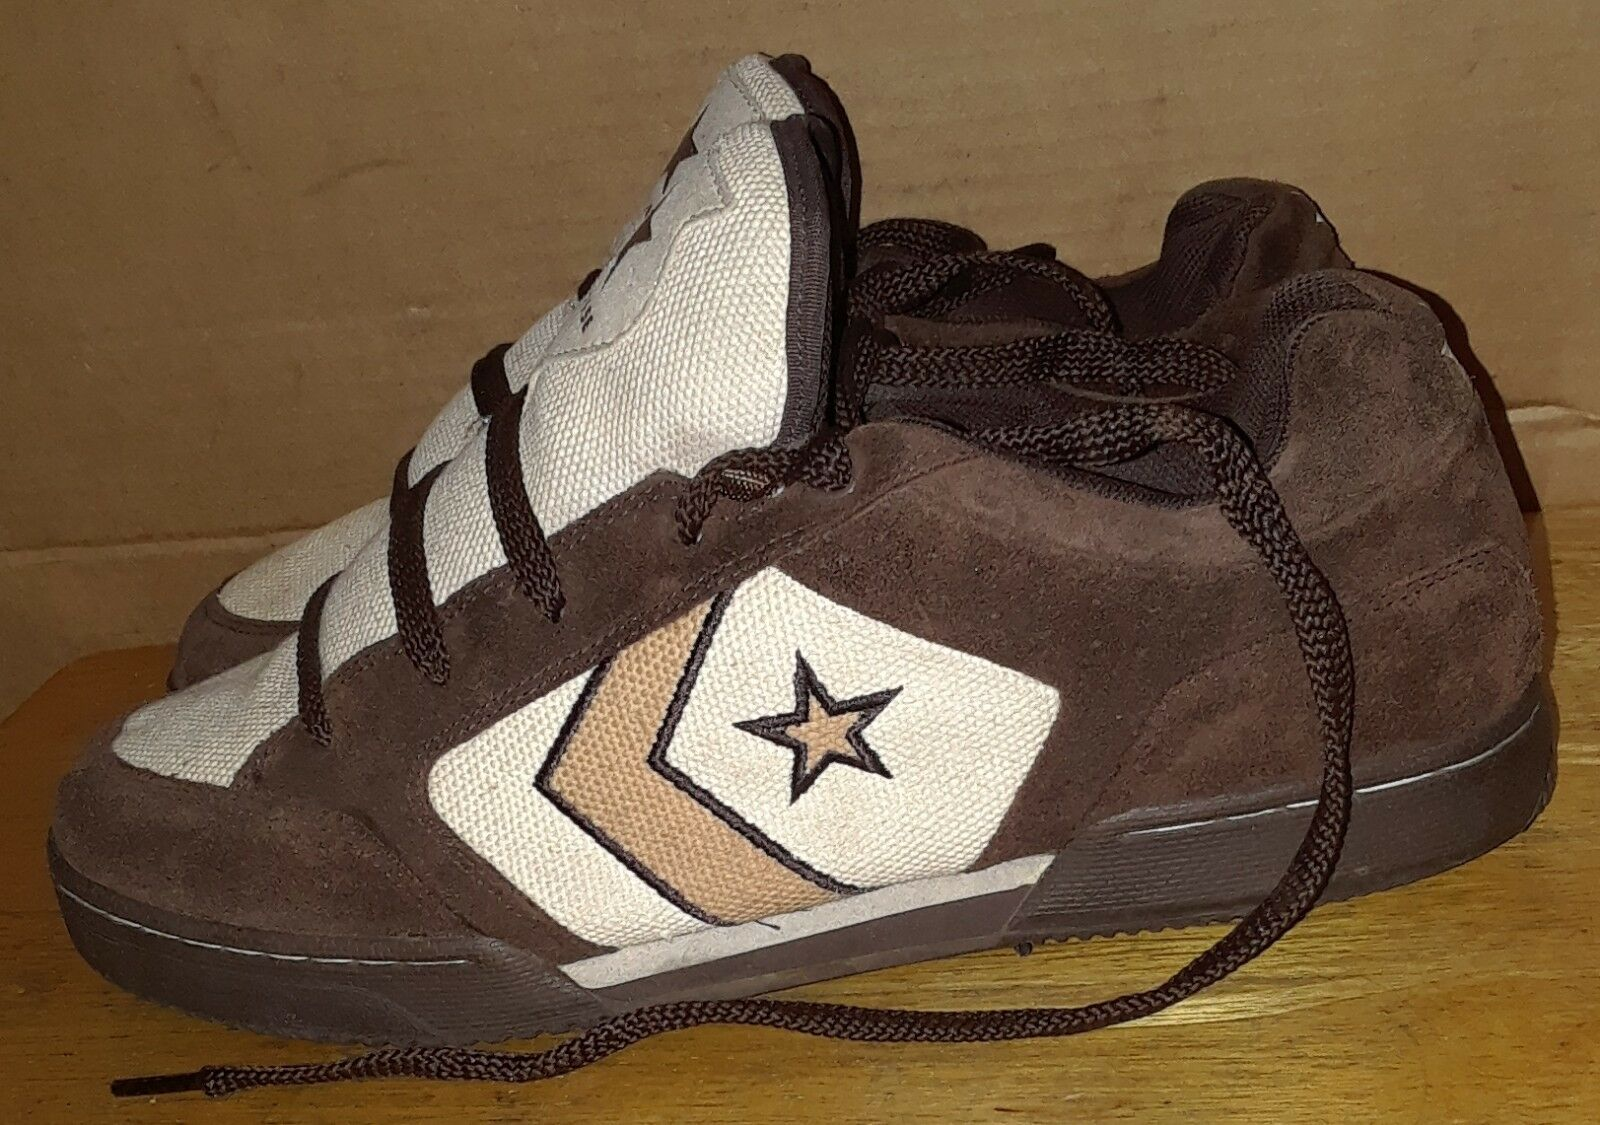 Vintage  Rare Converse One Star Men's Suede Low Top Sneakers size 12